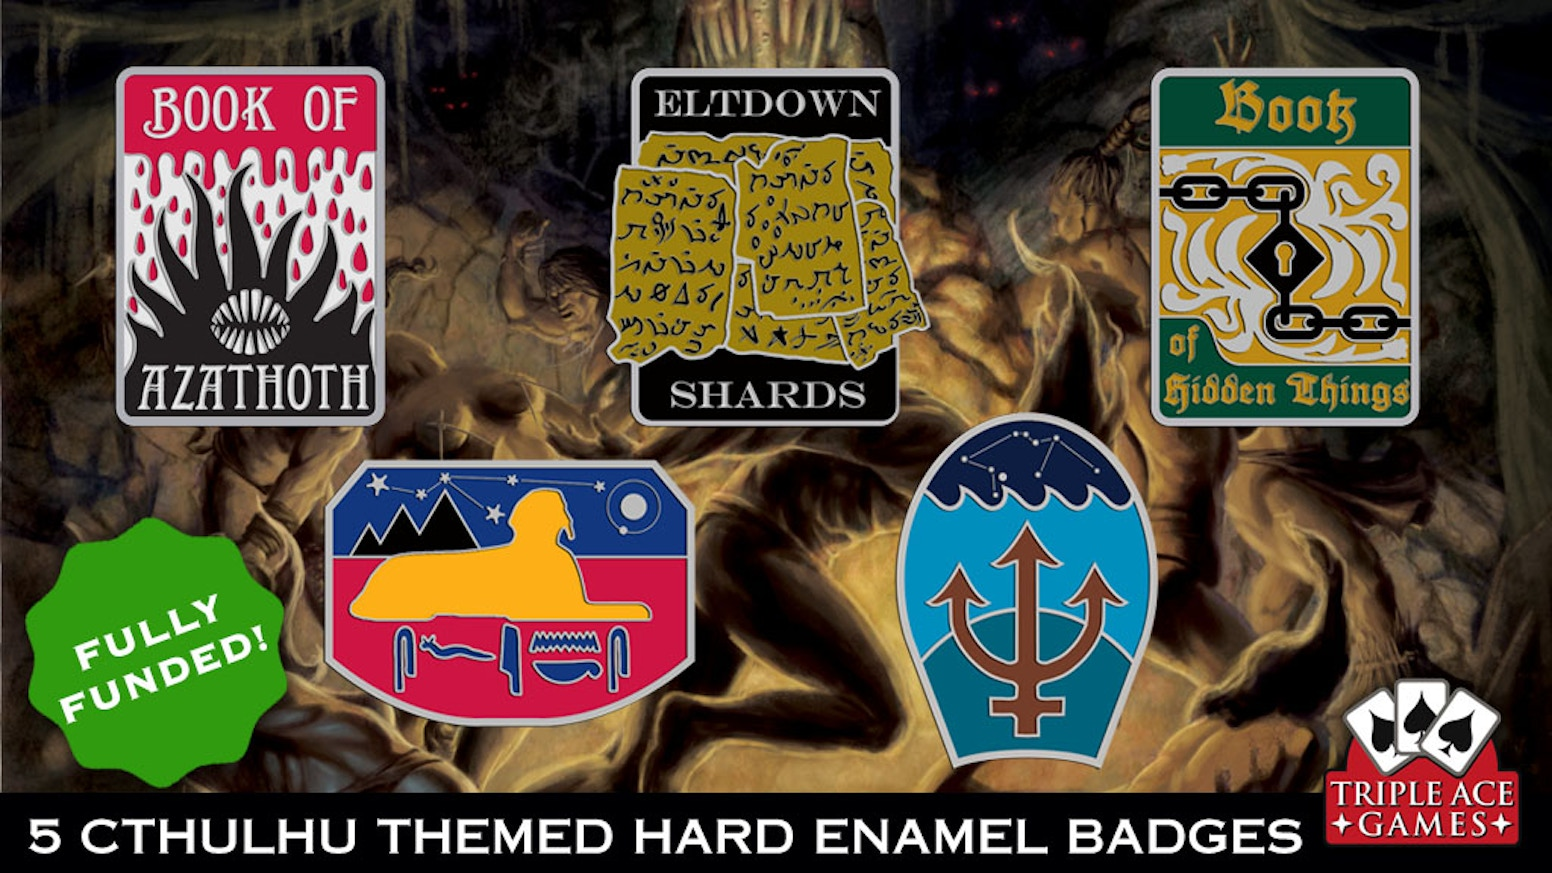 A set of five Cthulhu themed badges to show your knowledge and allegiance to the great old ones!